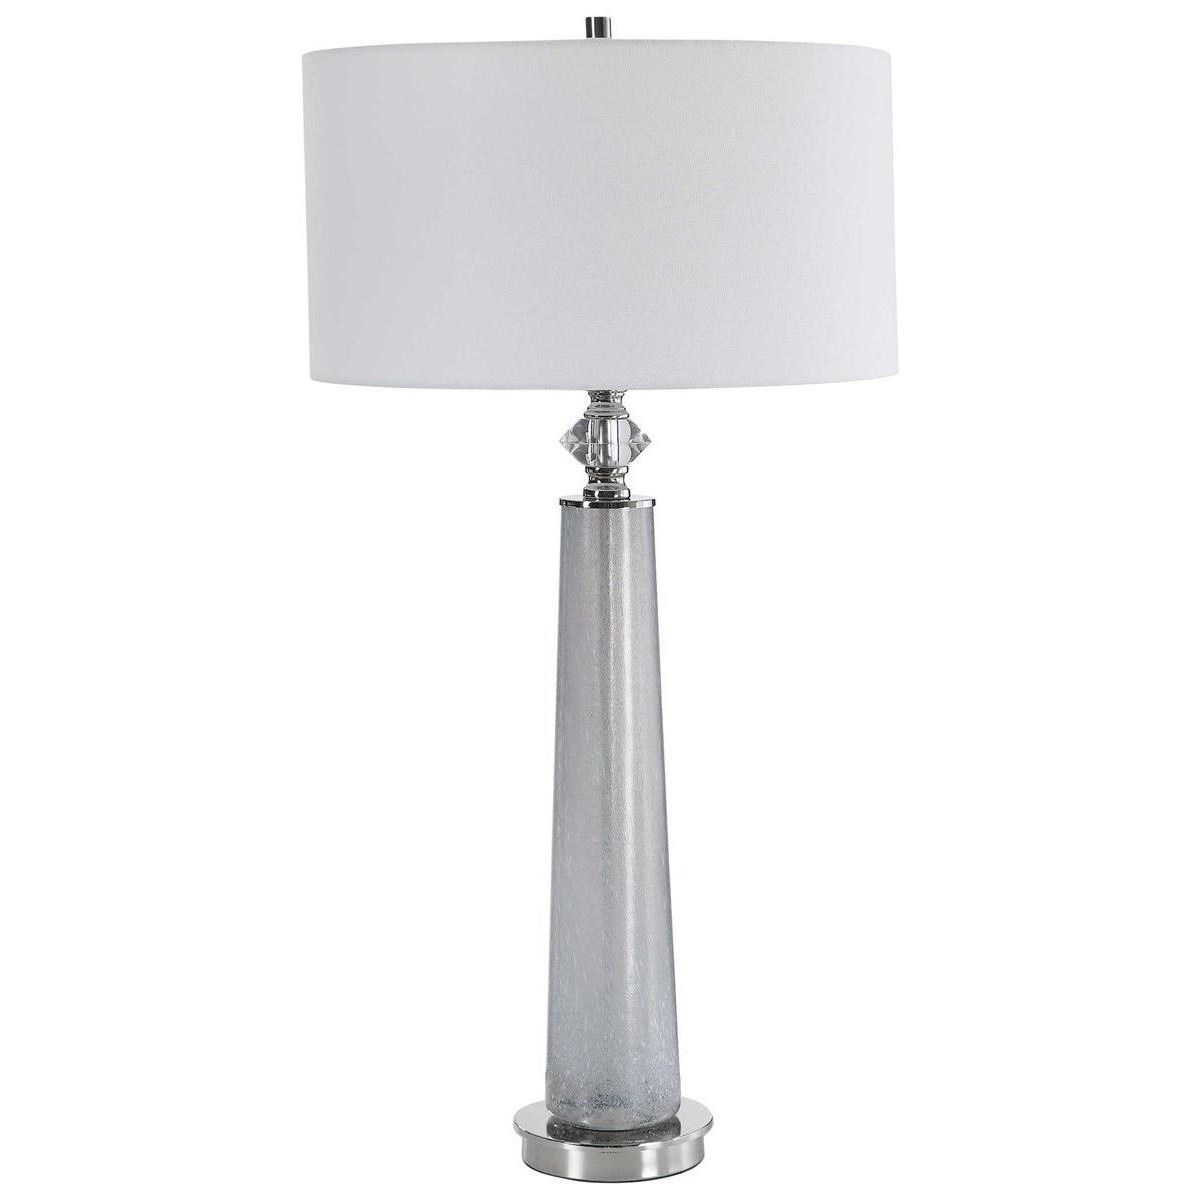 Table Lamps Grayton Frosted Art Table Lamp by Uttermost at Del Sol Furniture